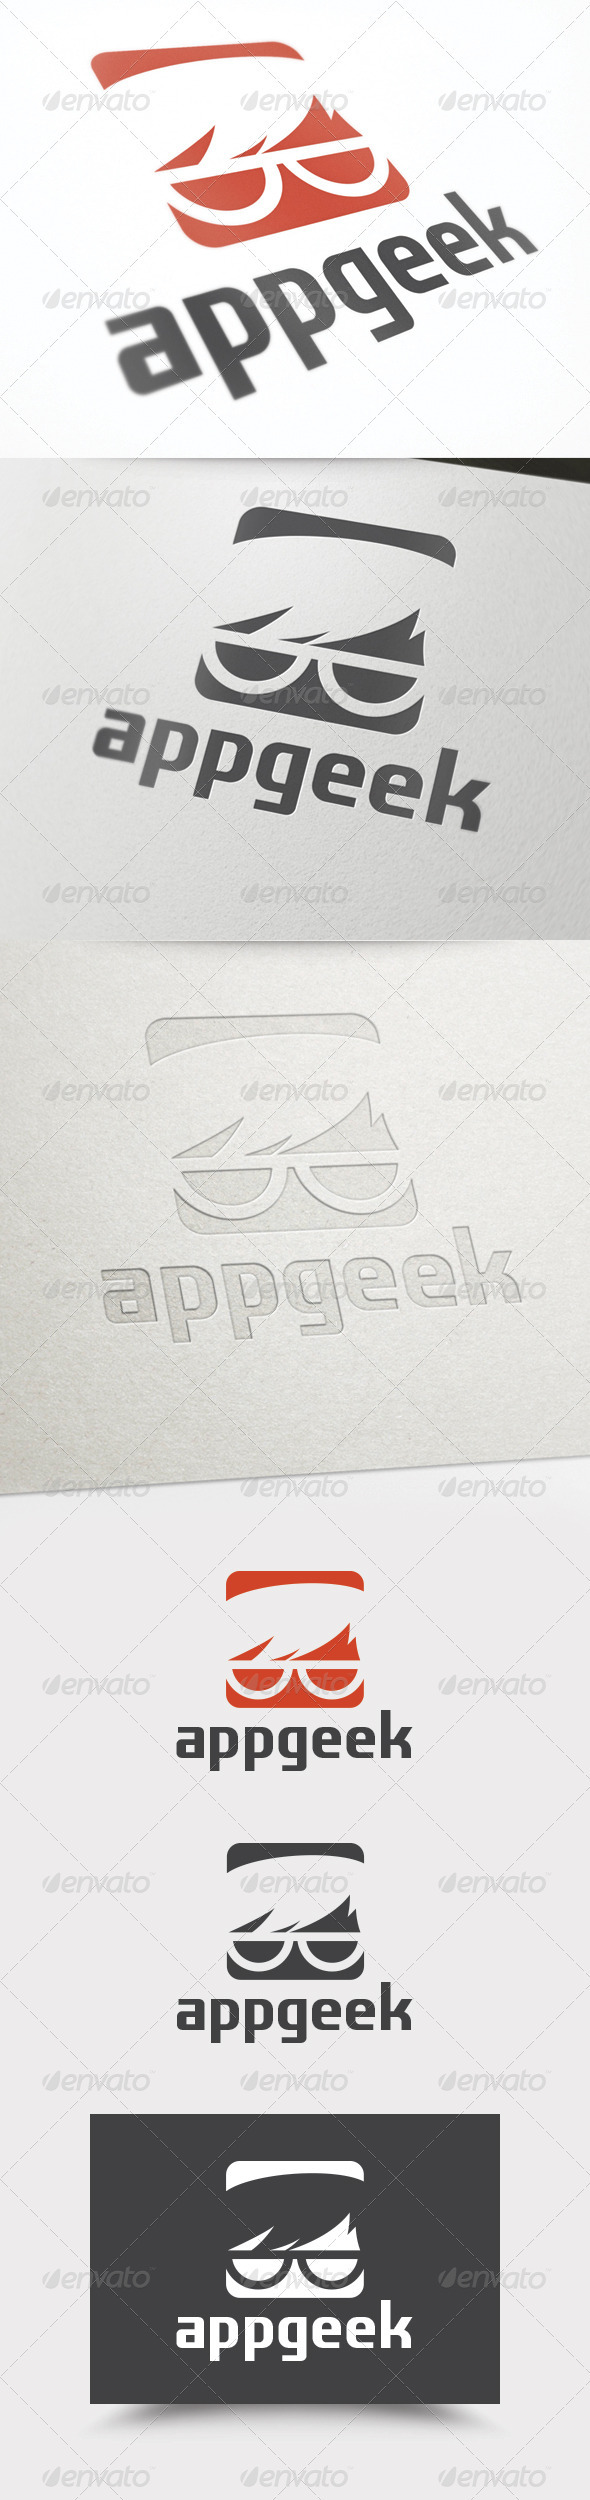 GraphicRiver App Geek Logo 3920799